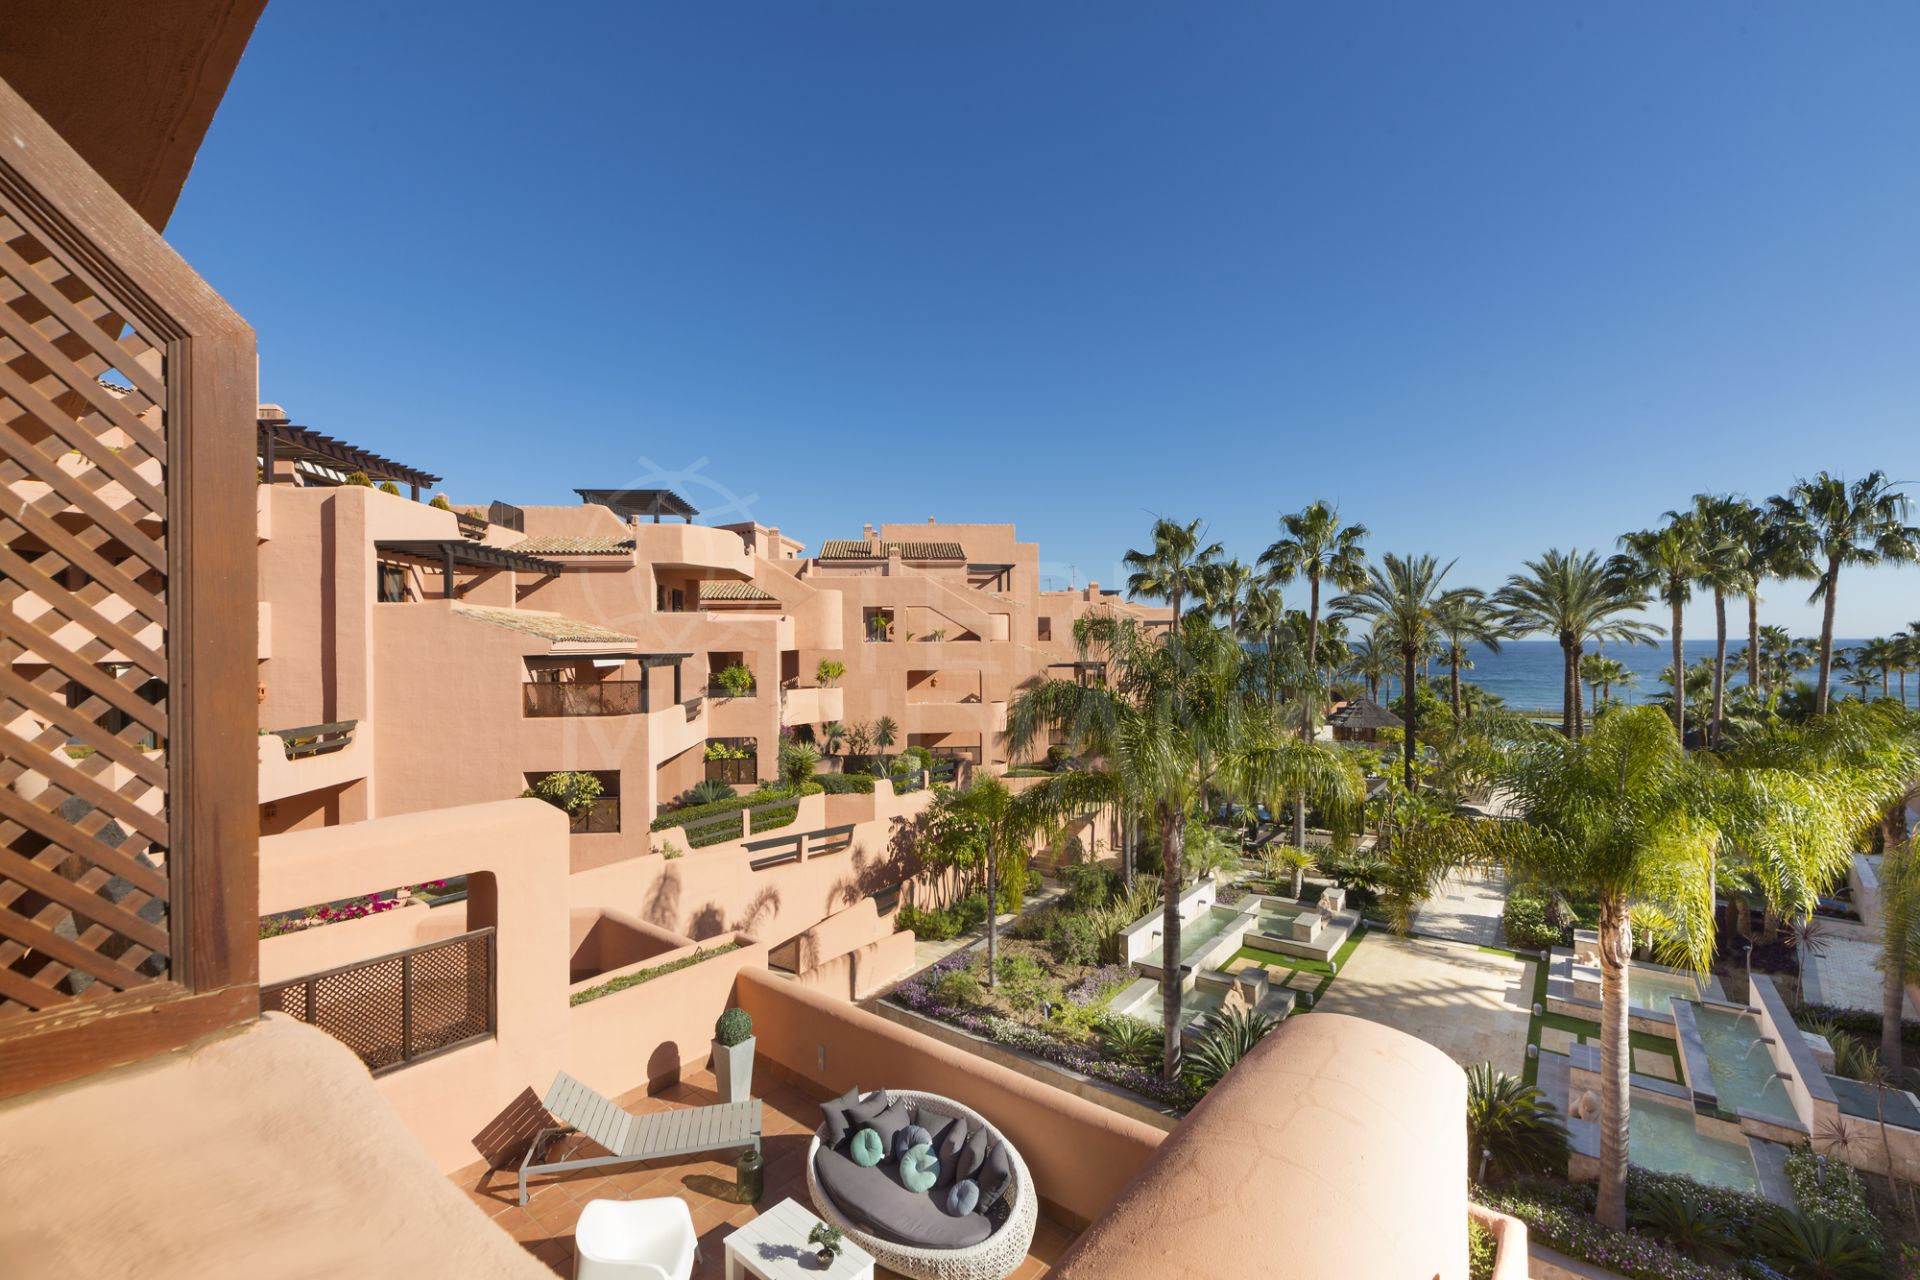 Ground floor apartment with private garden for sale, front line beach in Mar Azul, Estepona